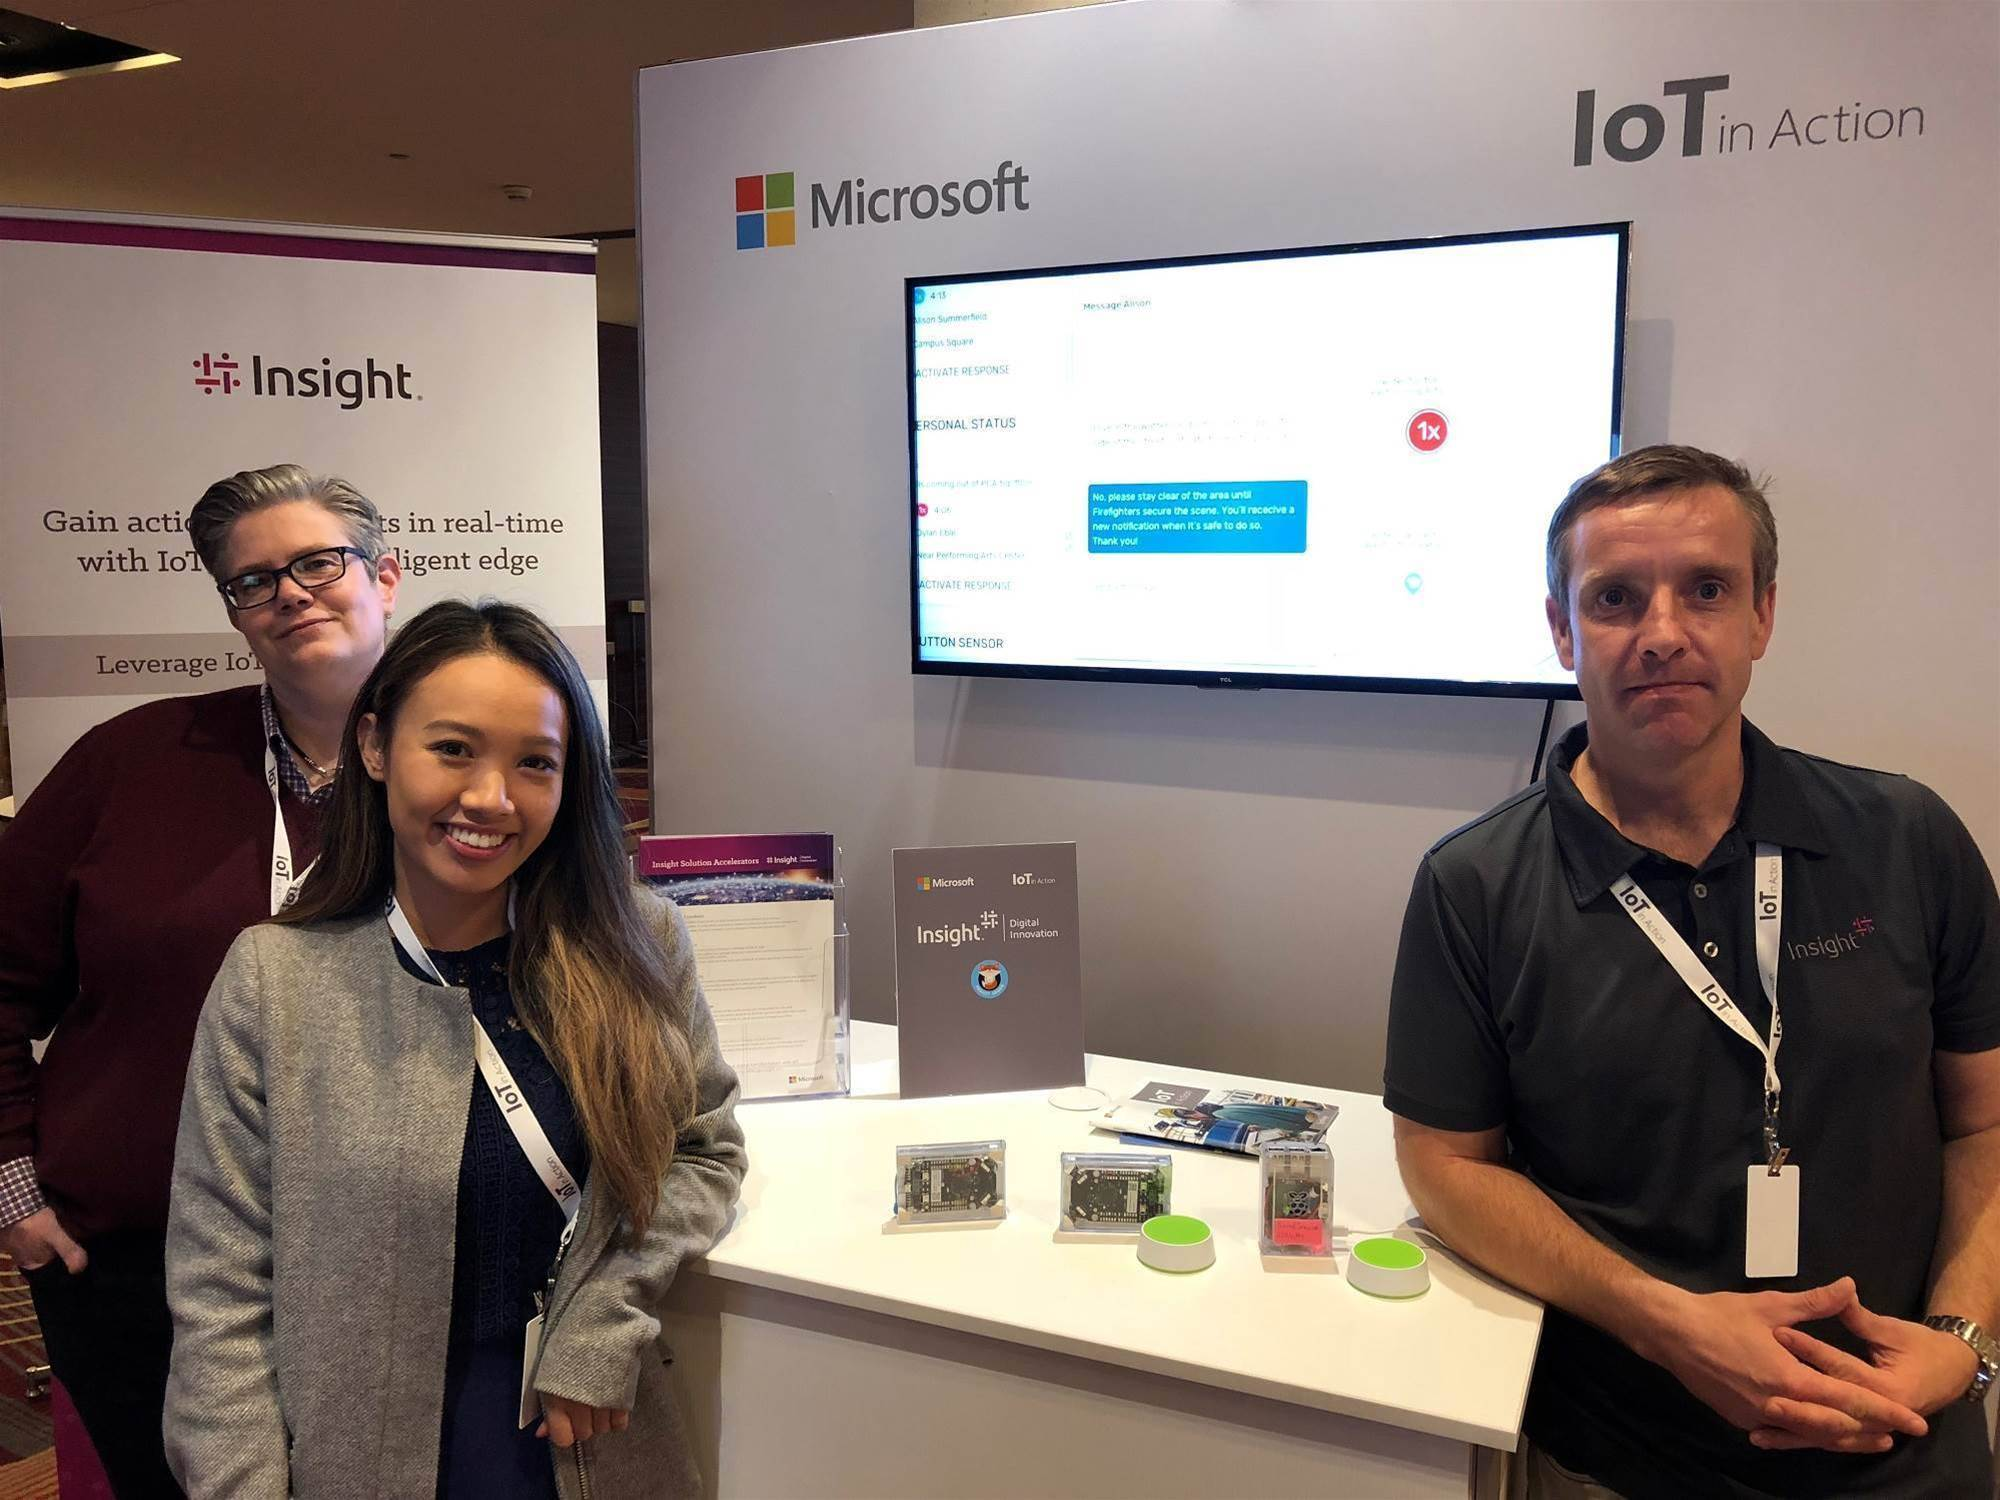 Photos: the IoT in Action event in Sydney